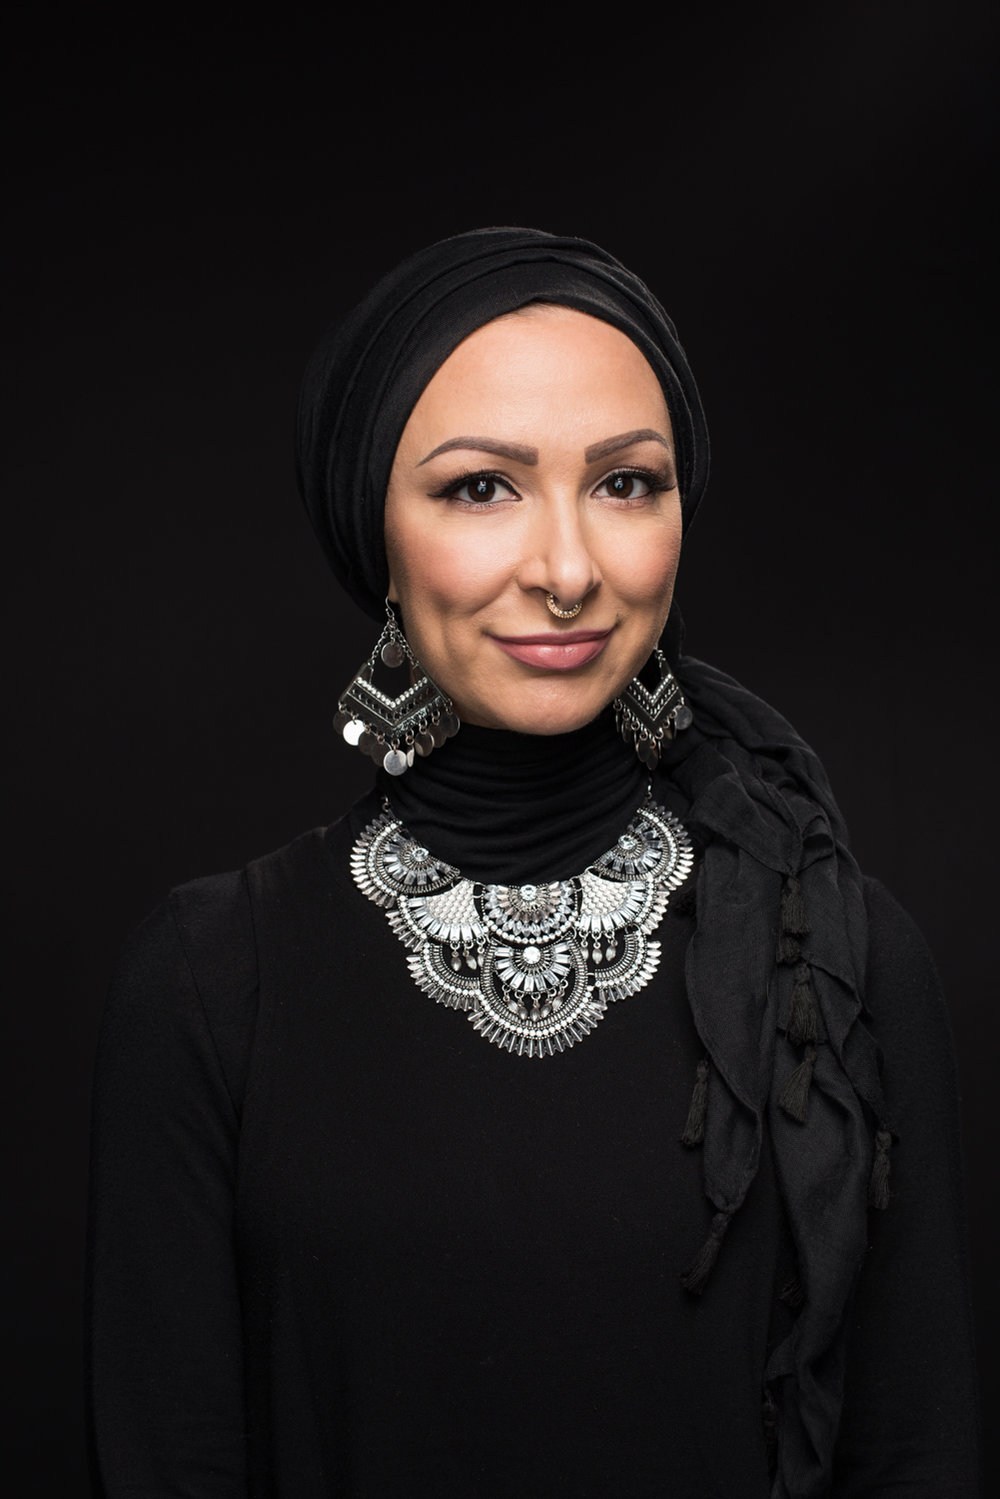 Portrait of Amirah Sackett a Muslim hip hop artist in Chicago